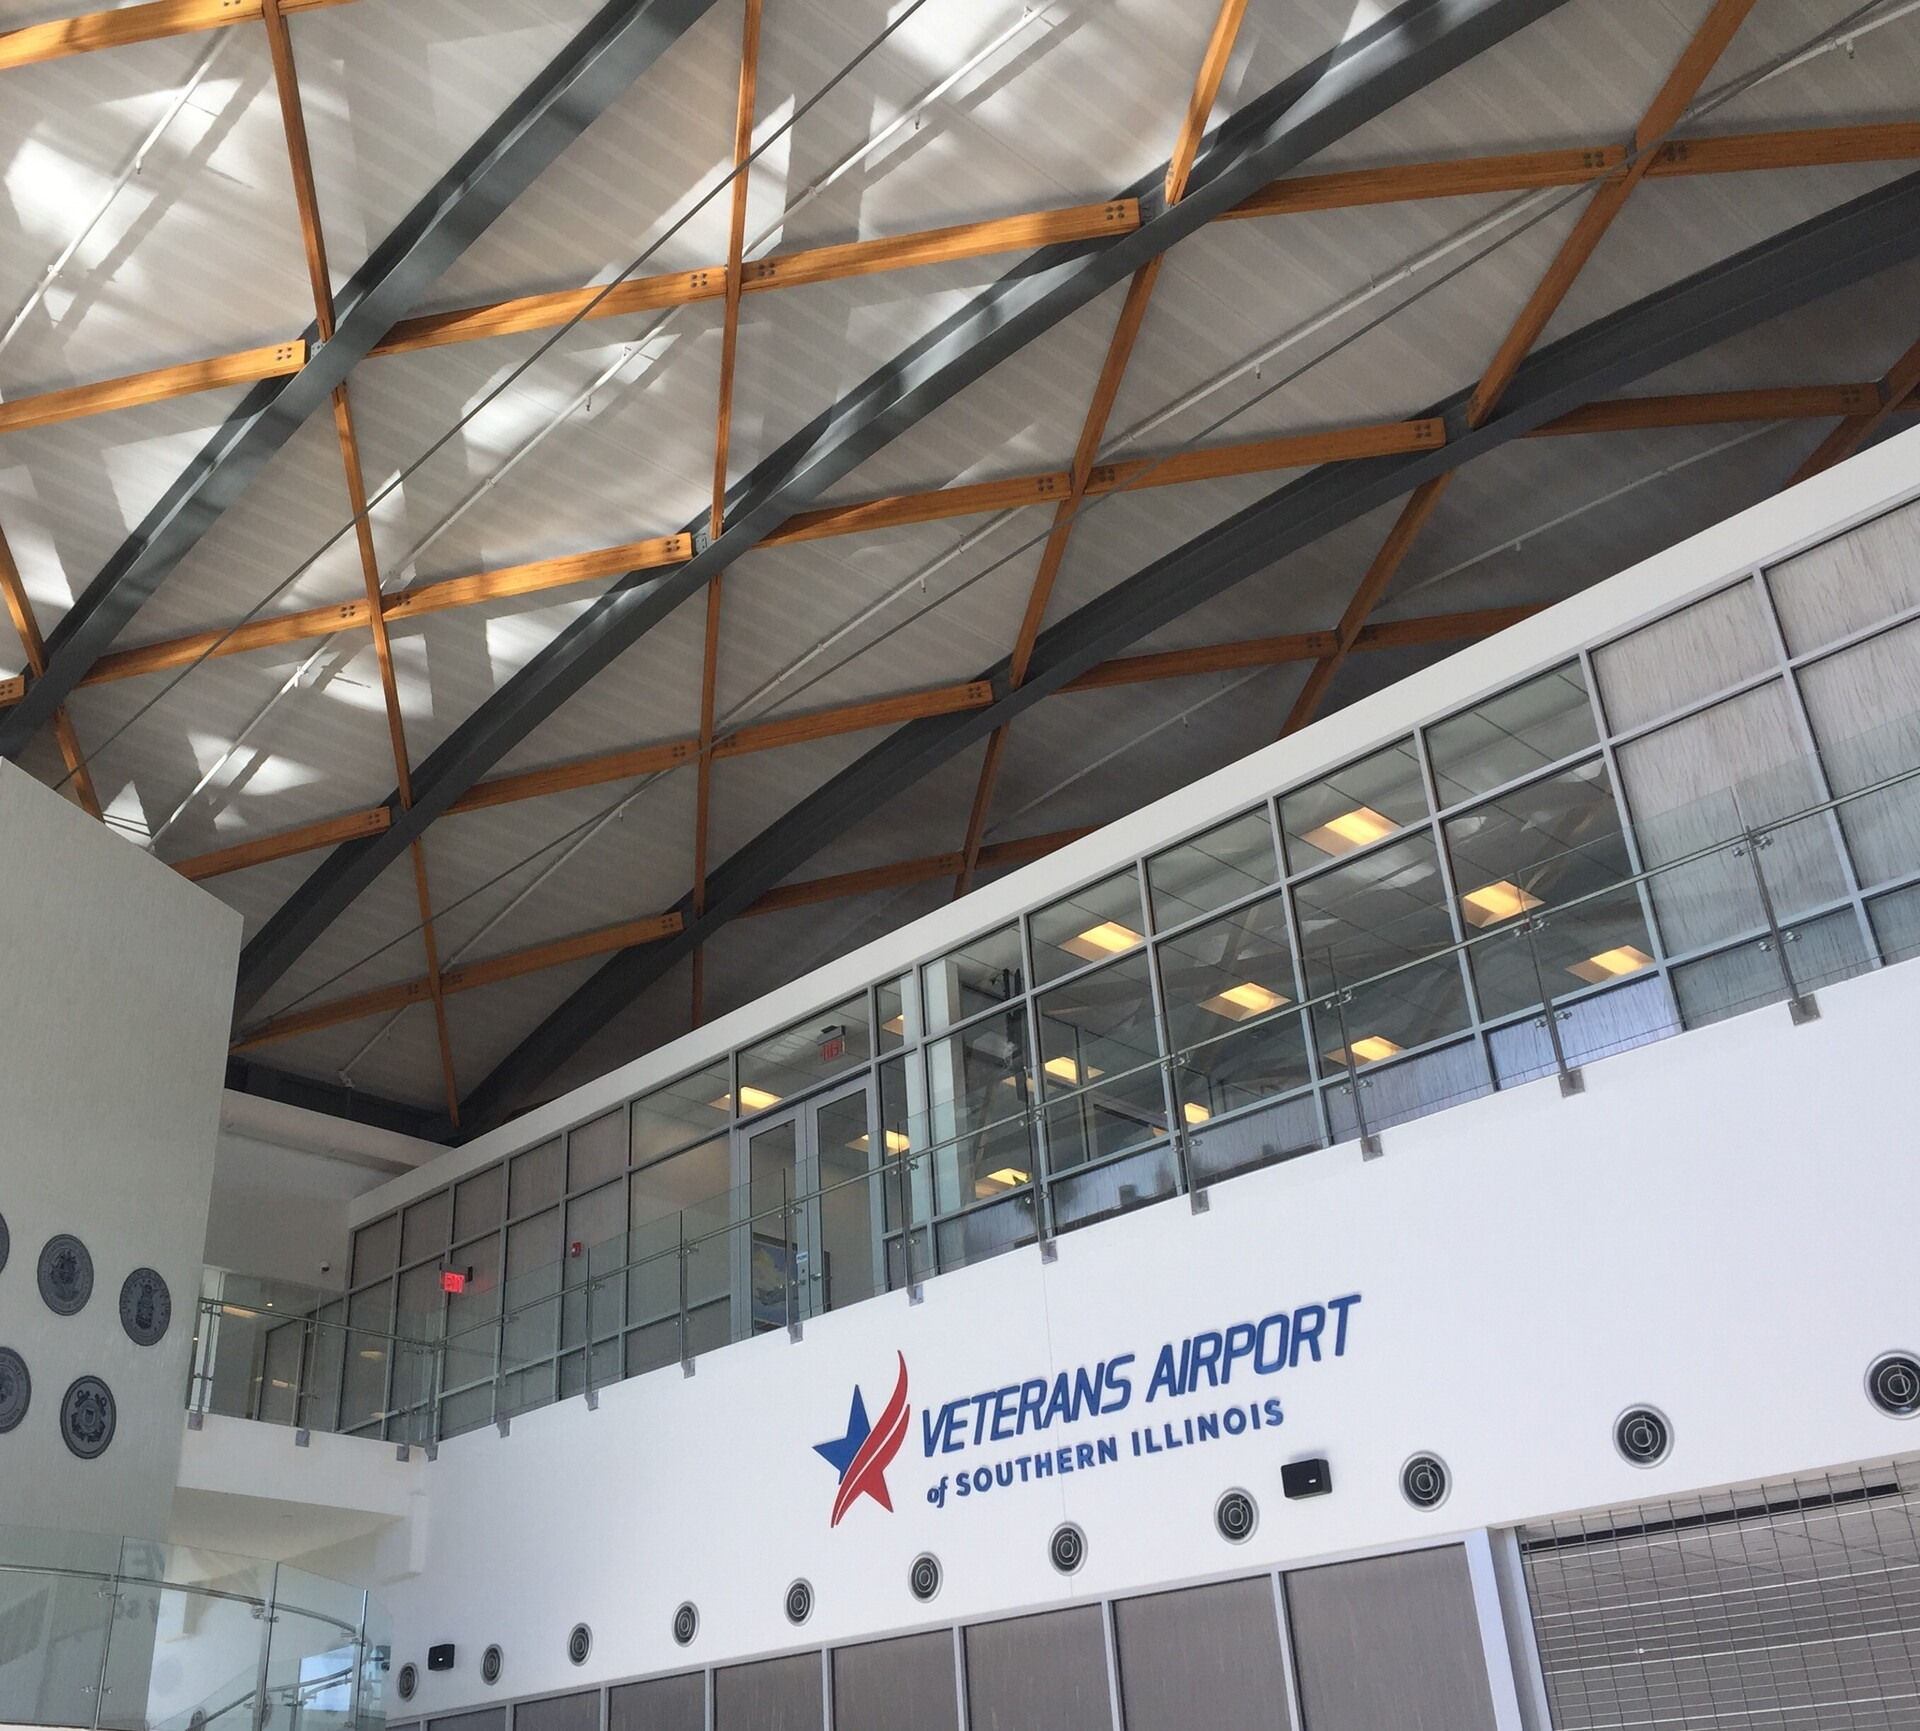 Veterans Airport, located in Marion, Illinois, features Lamboo® Structure™ Series - Cambered Structural Beams throughout the interior.